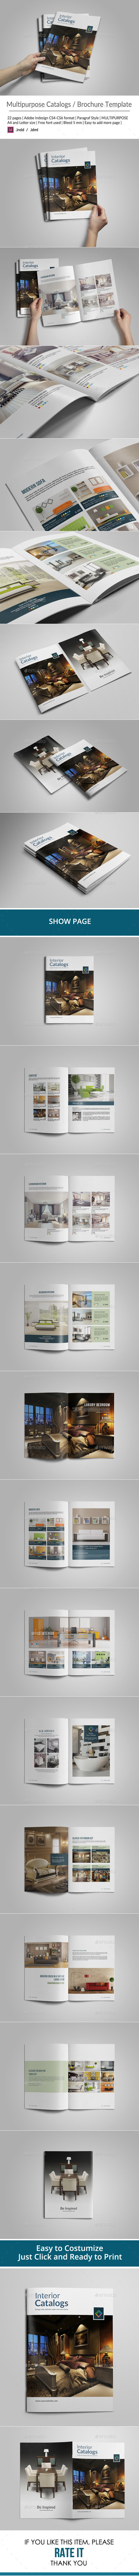 Catalogs / Brochure - Catalogs Brochures